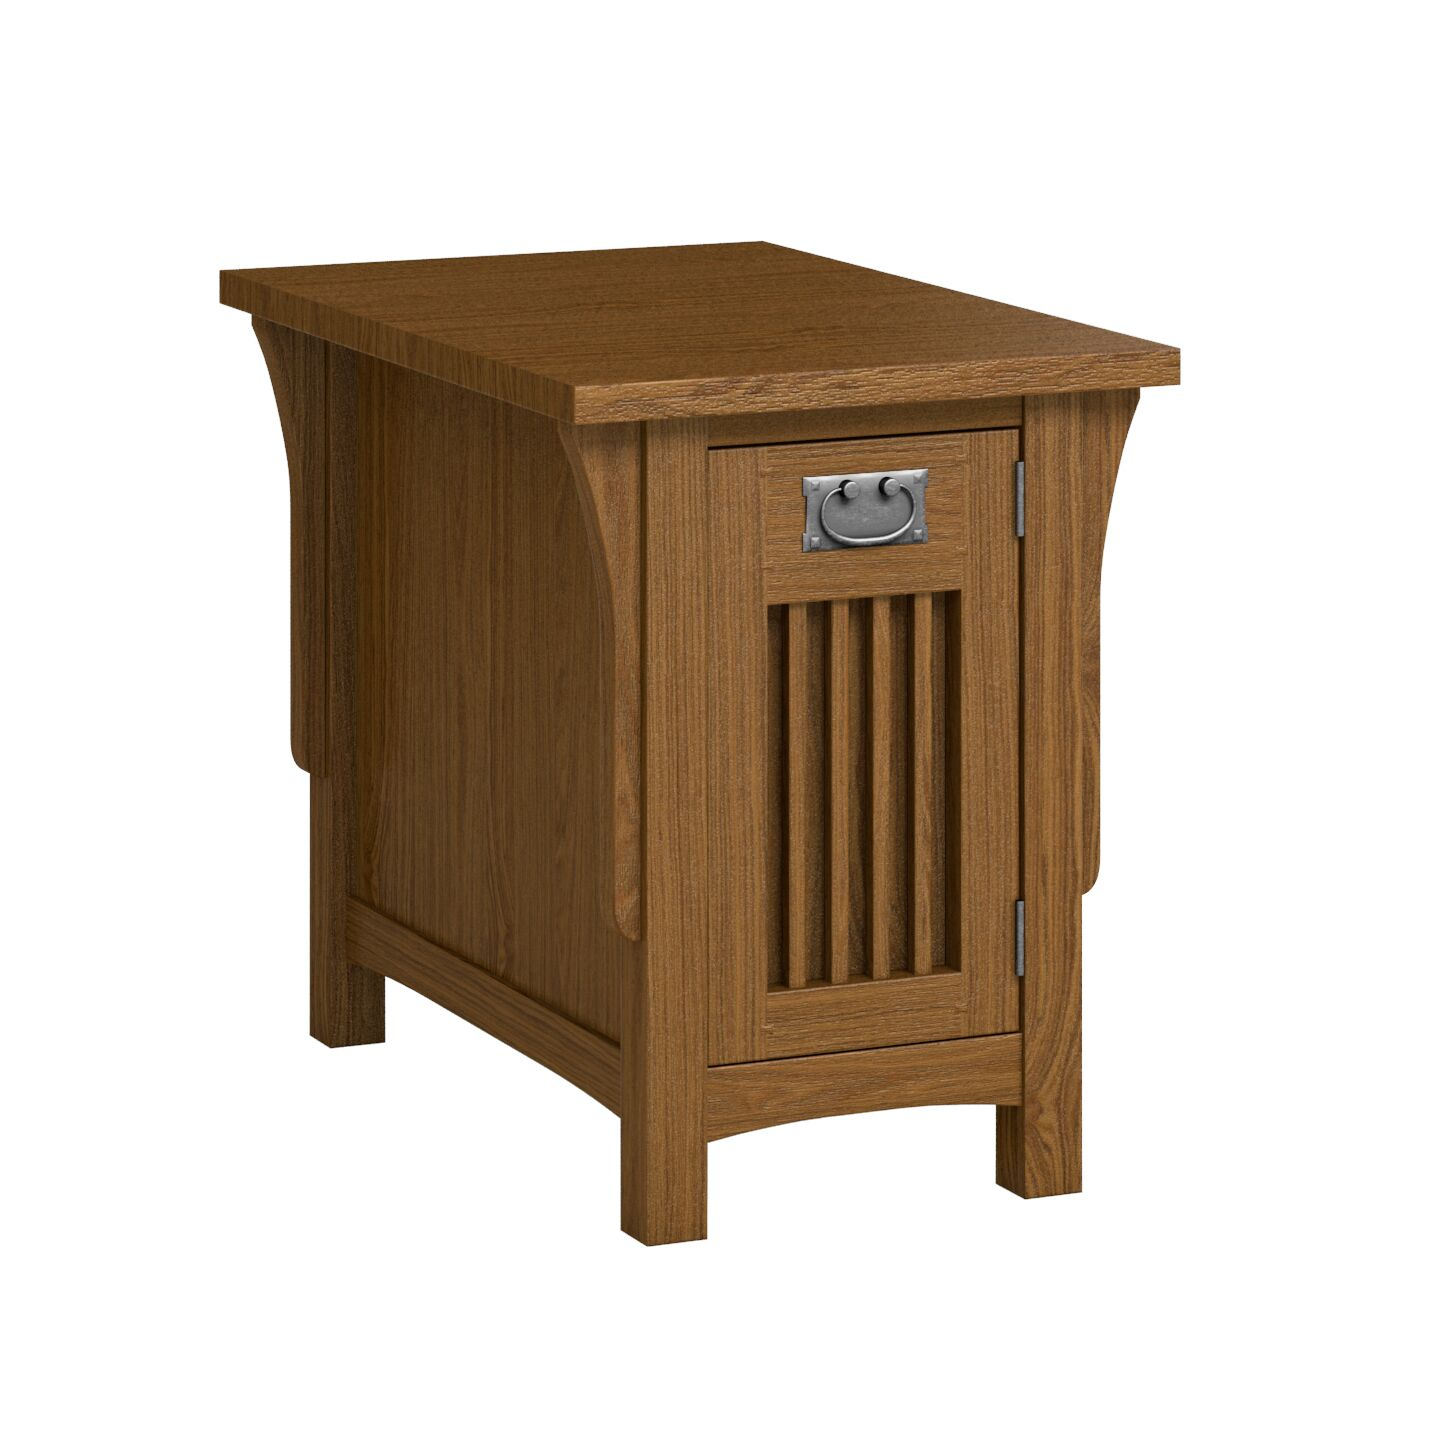 FLW Chairside Table With Drawer Color: Mission